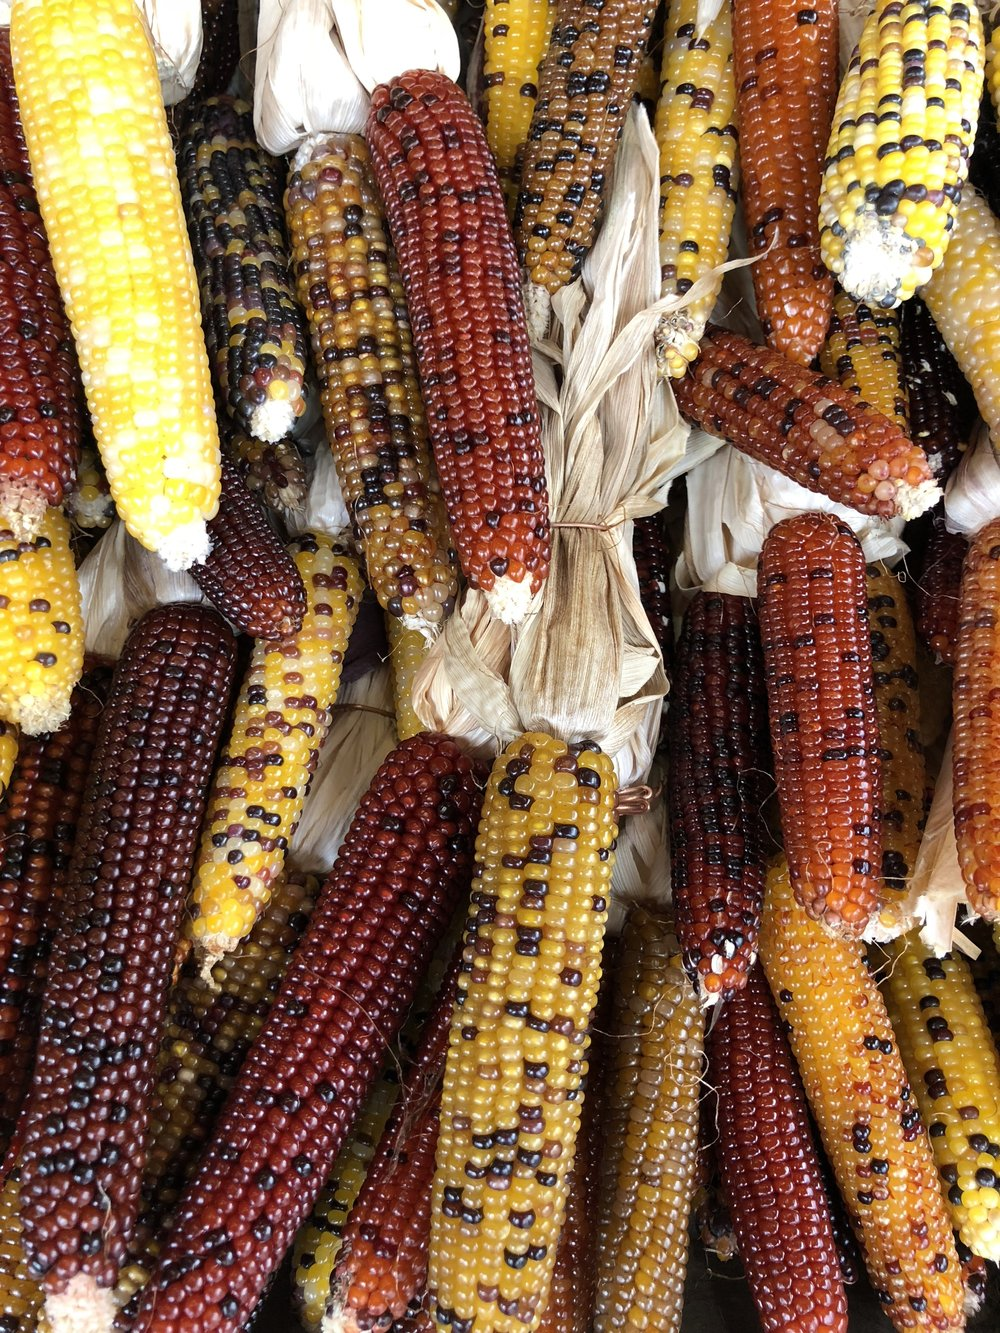 Colorful decorative corn at Russo's